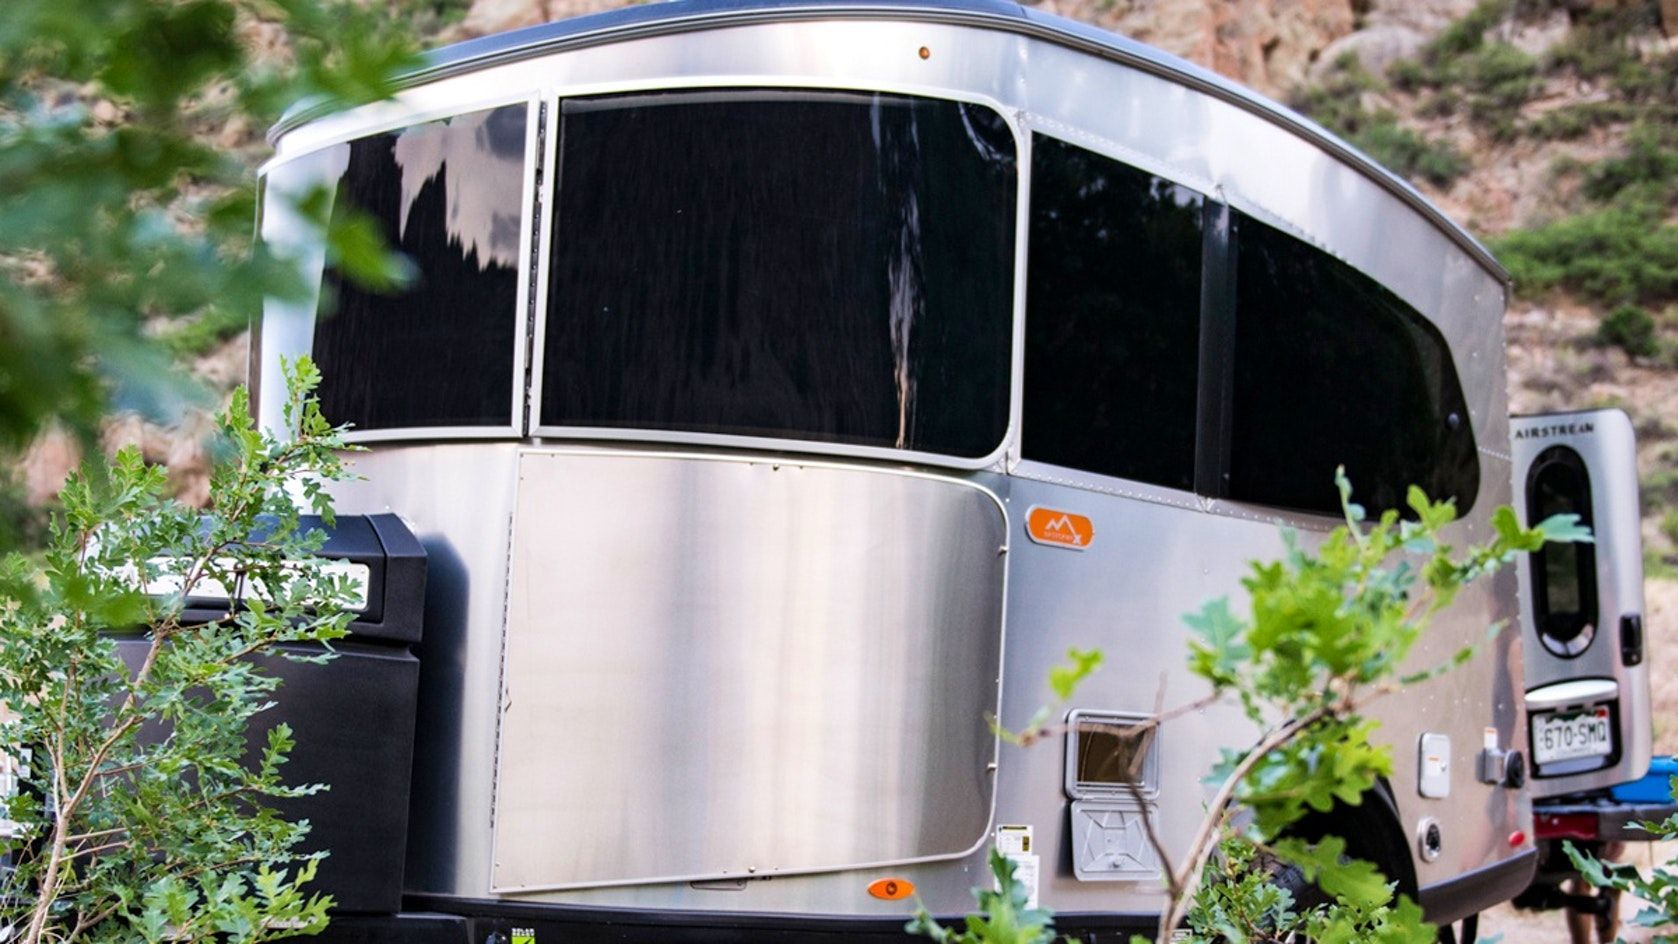 Basecamp | Travel Trailers | Airstream -  Basecamp | Travel Trailers | Airstream  -